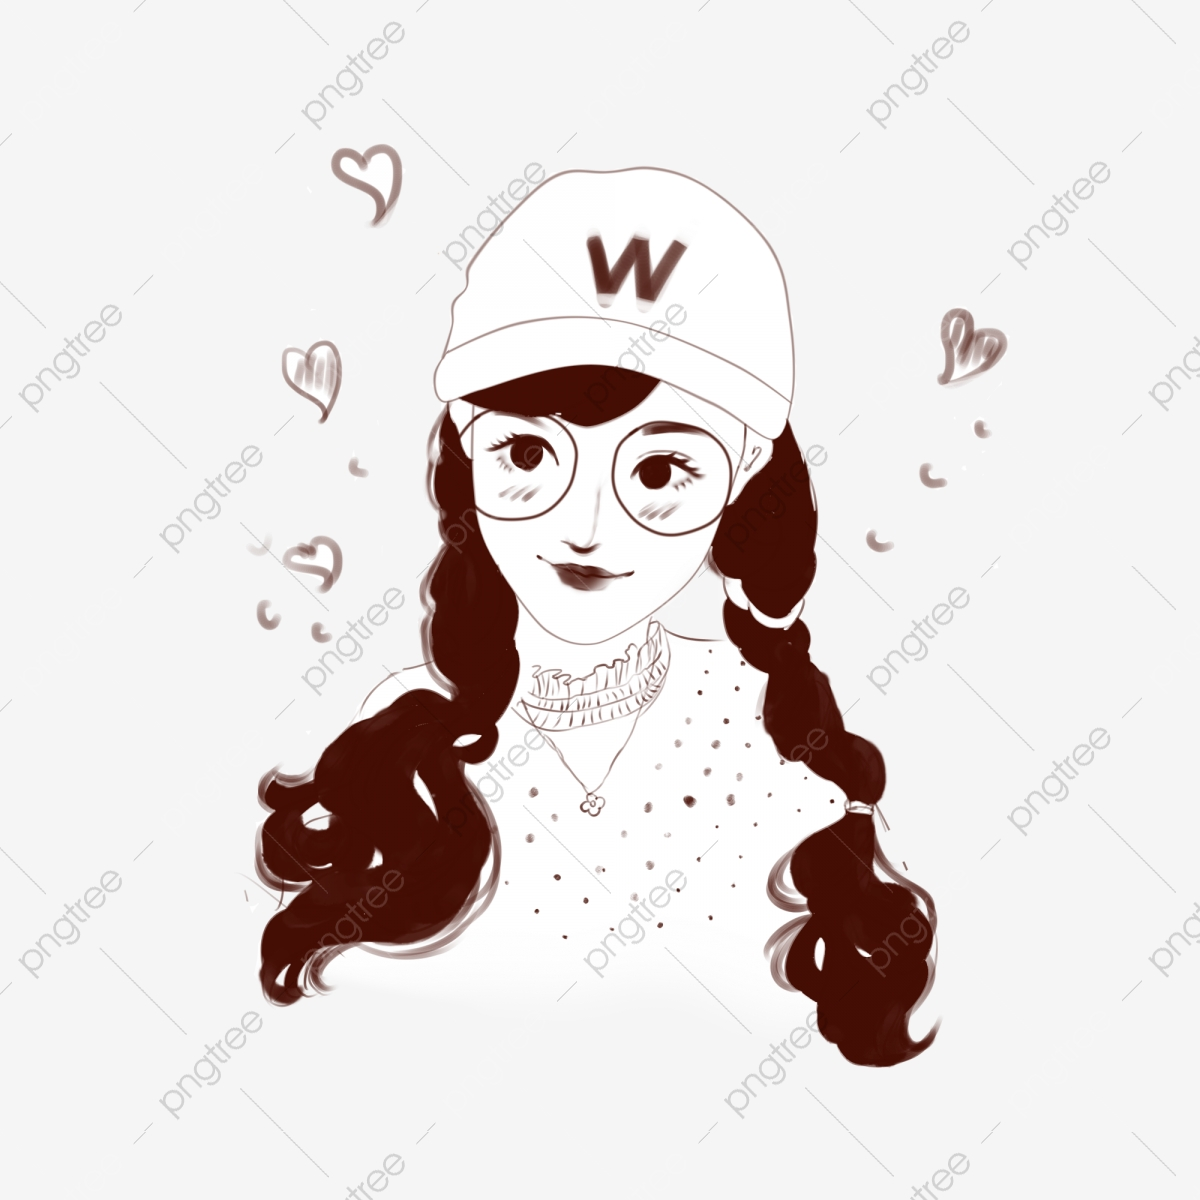 Beauty Cartoon Hand Drawn Long Hair Beauty Avatar Female Stick Figure Avatar Fashion Beauty Png Transparent Clipart Image And Psd File For Free Download